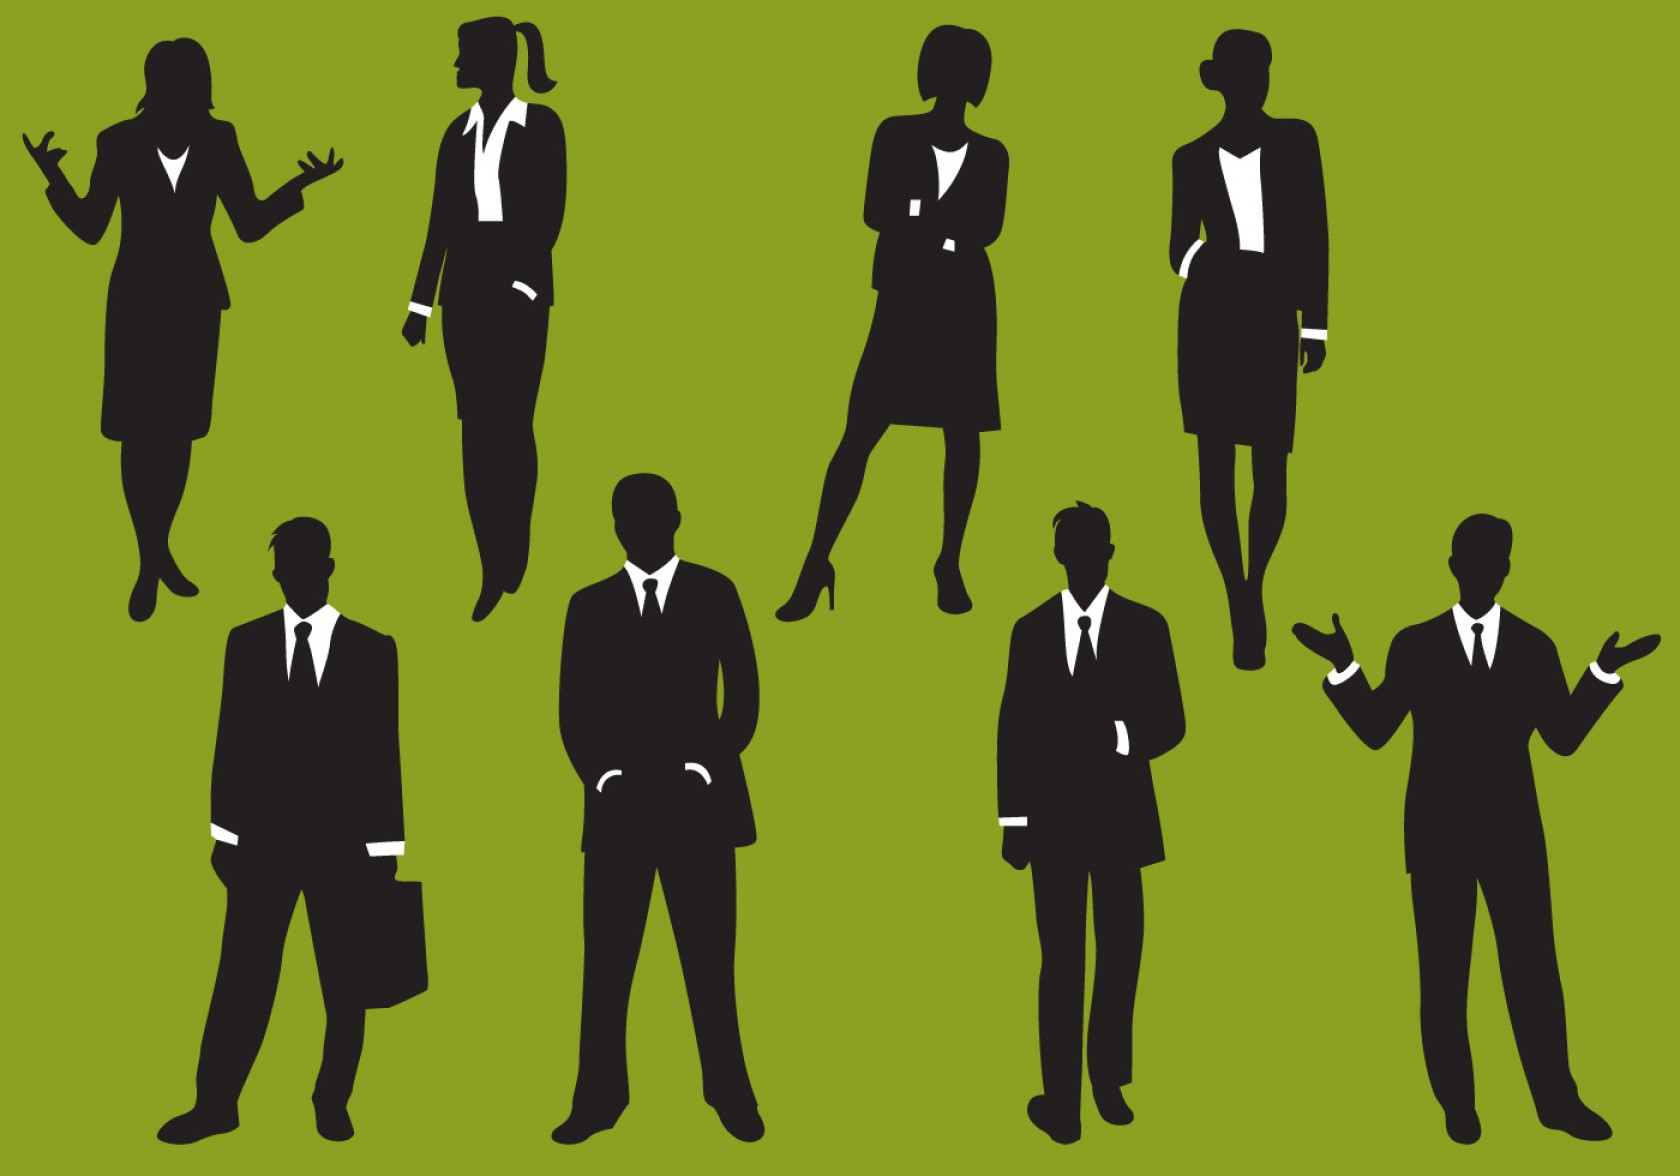 Male Silhouette Vector Art: Woman And Man Business Silhouettes